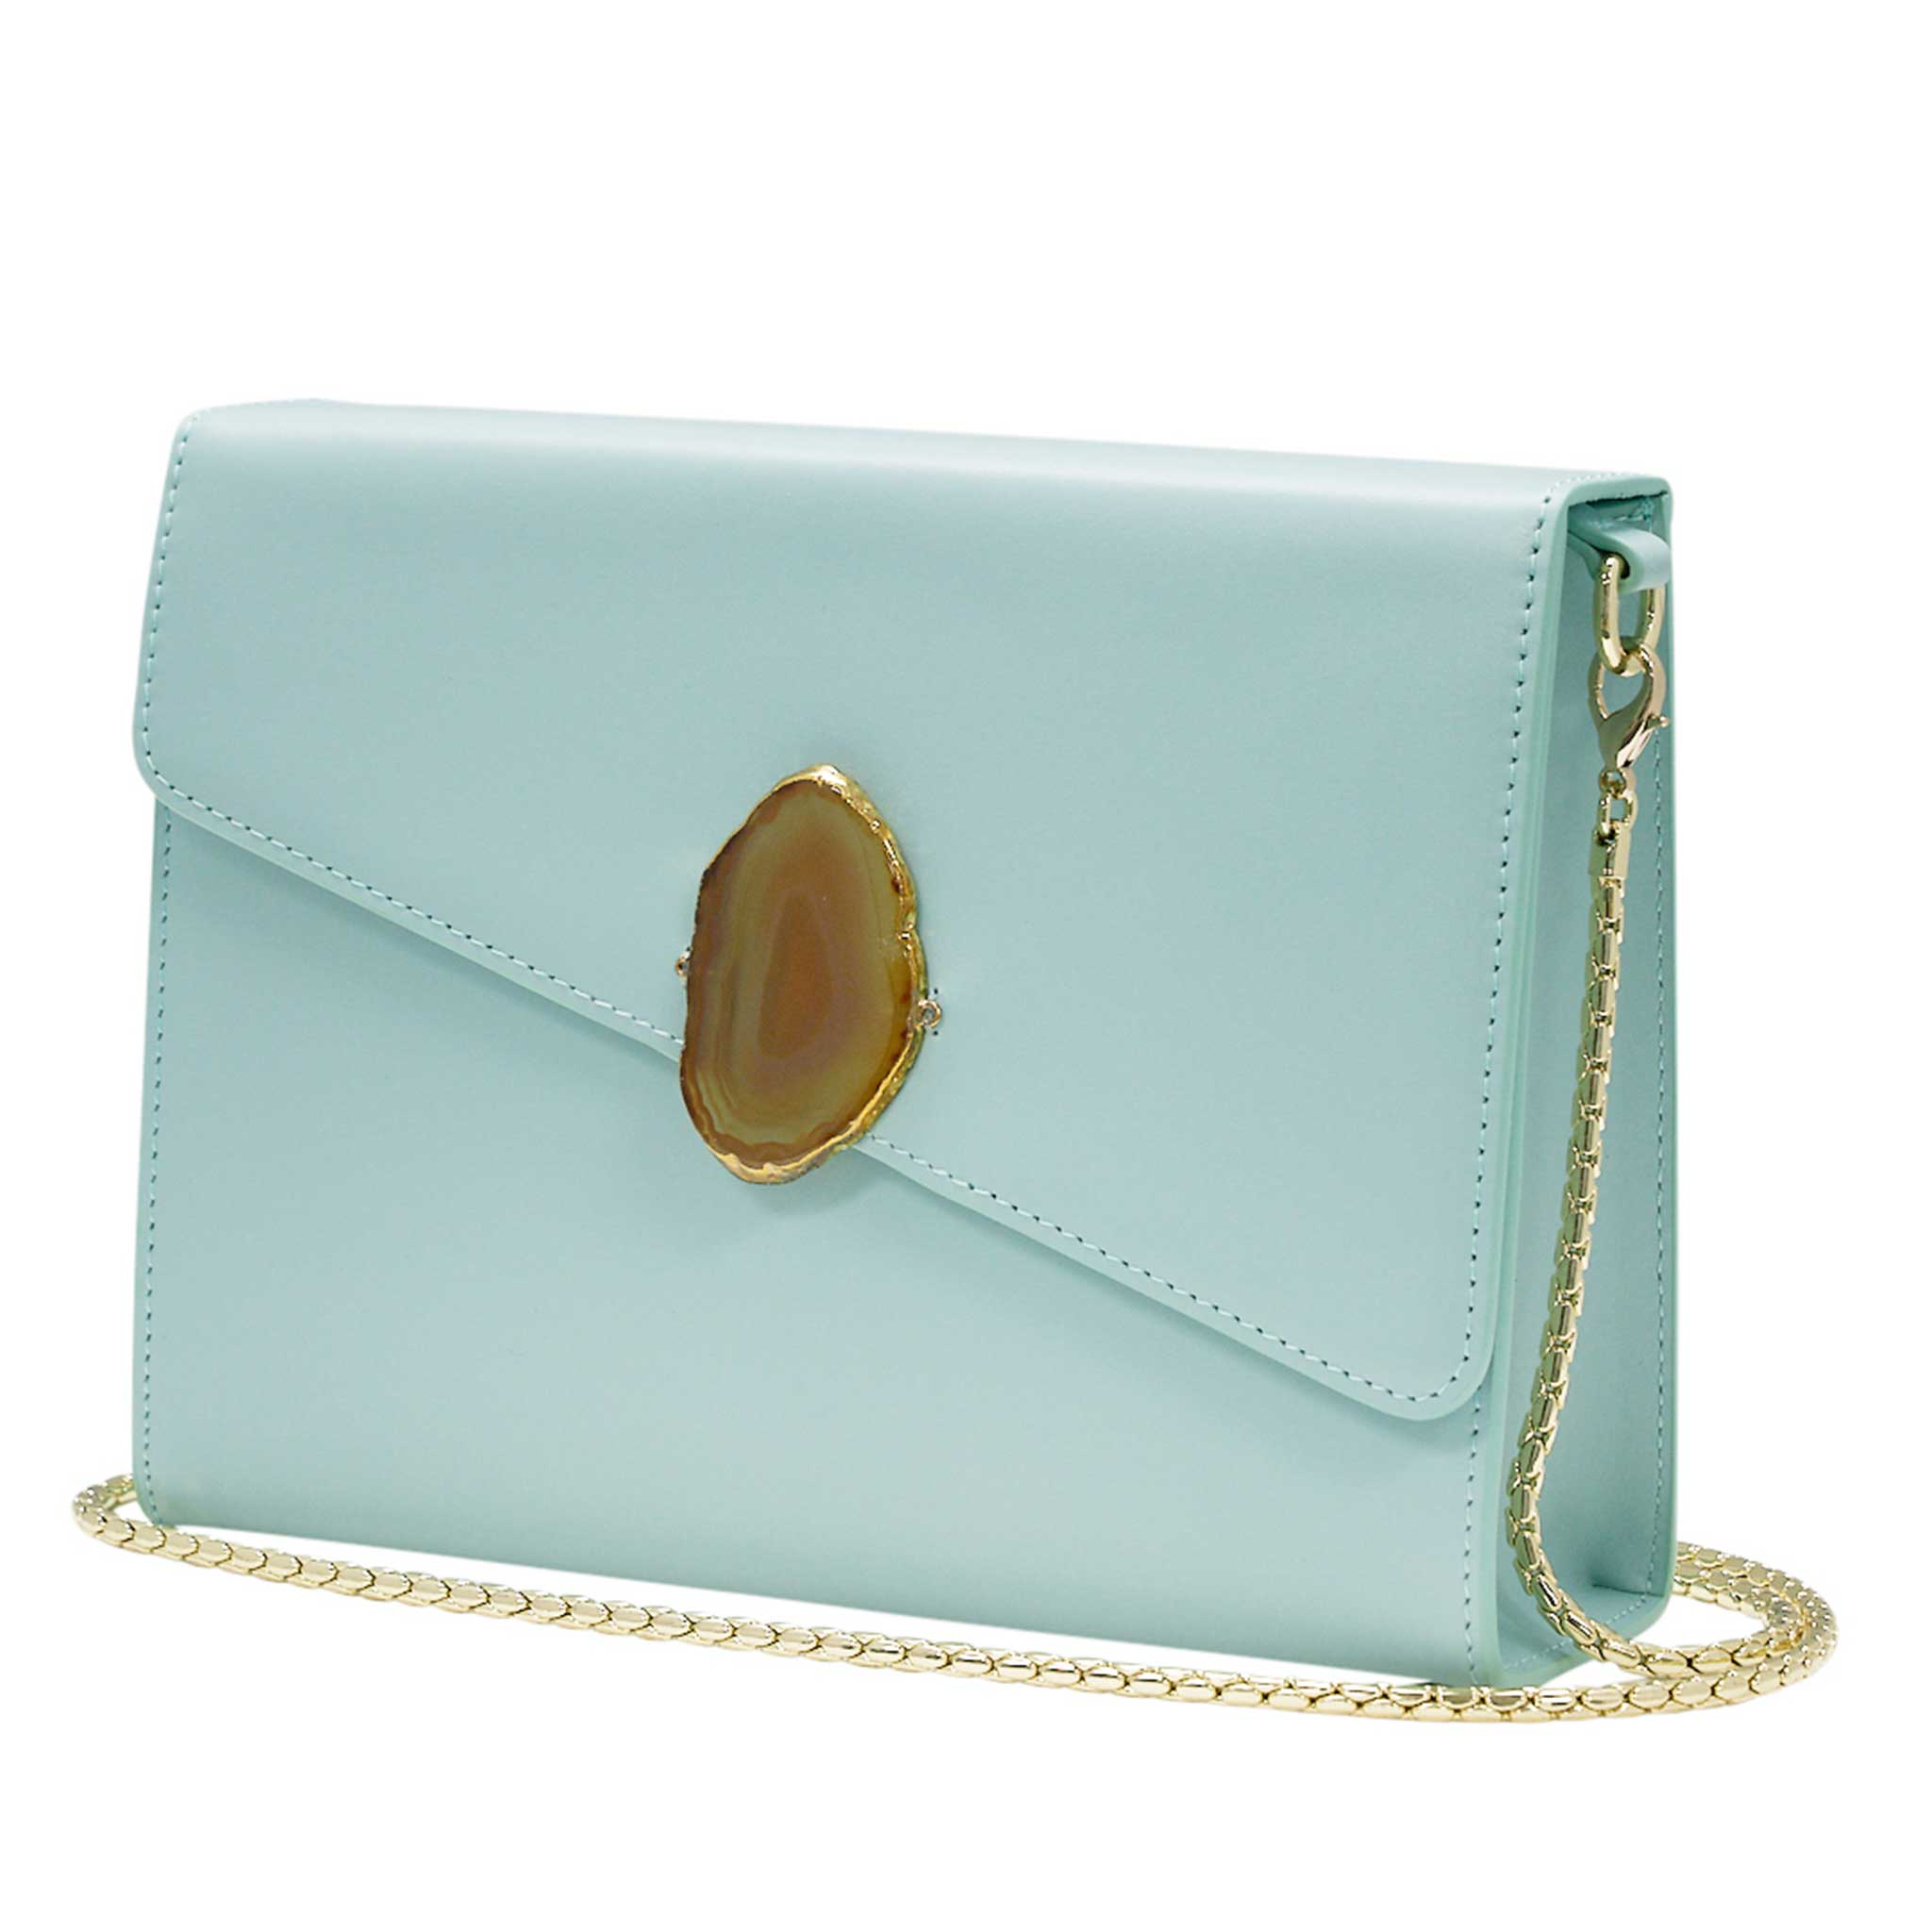 LOVED BAG - MOONSTONE WHITE LEATHER WITH YELLOW AGATE - 1.02.001.005